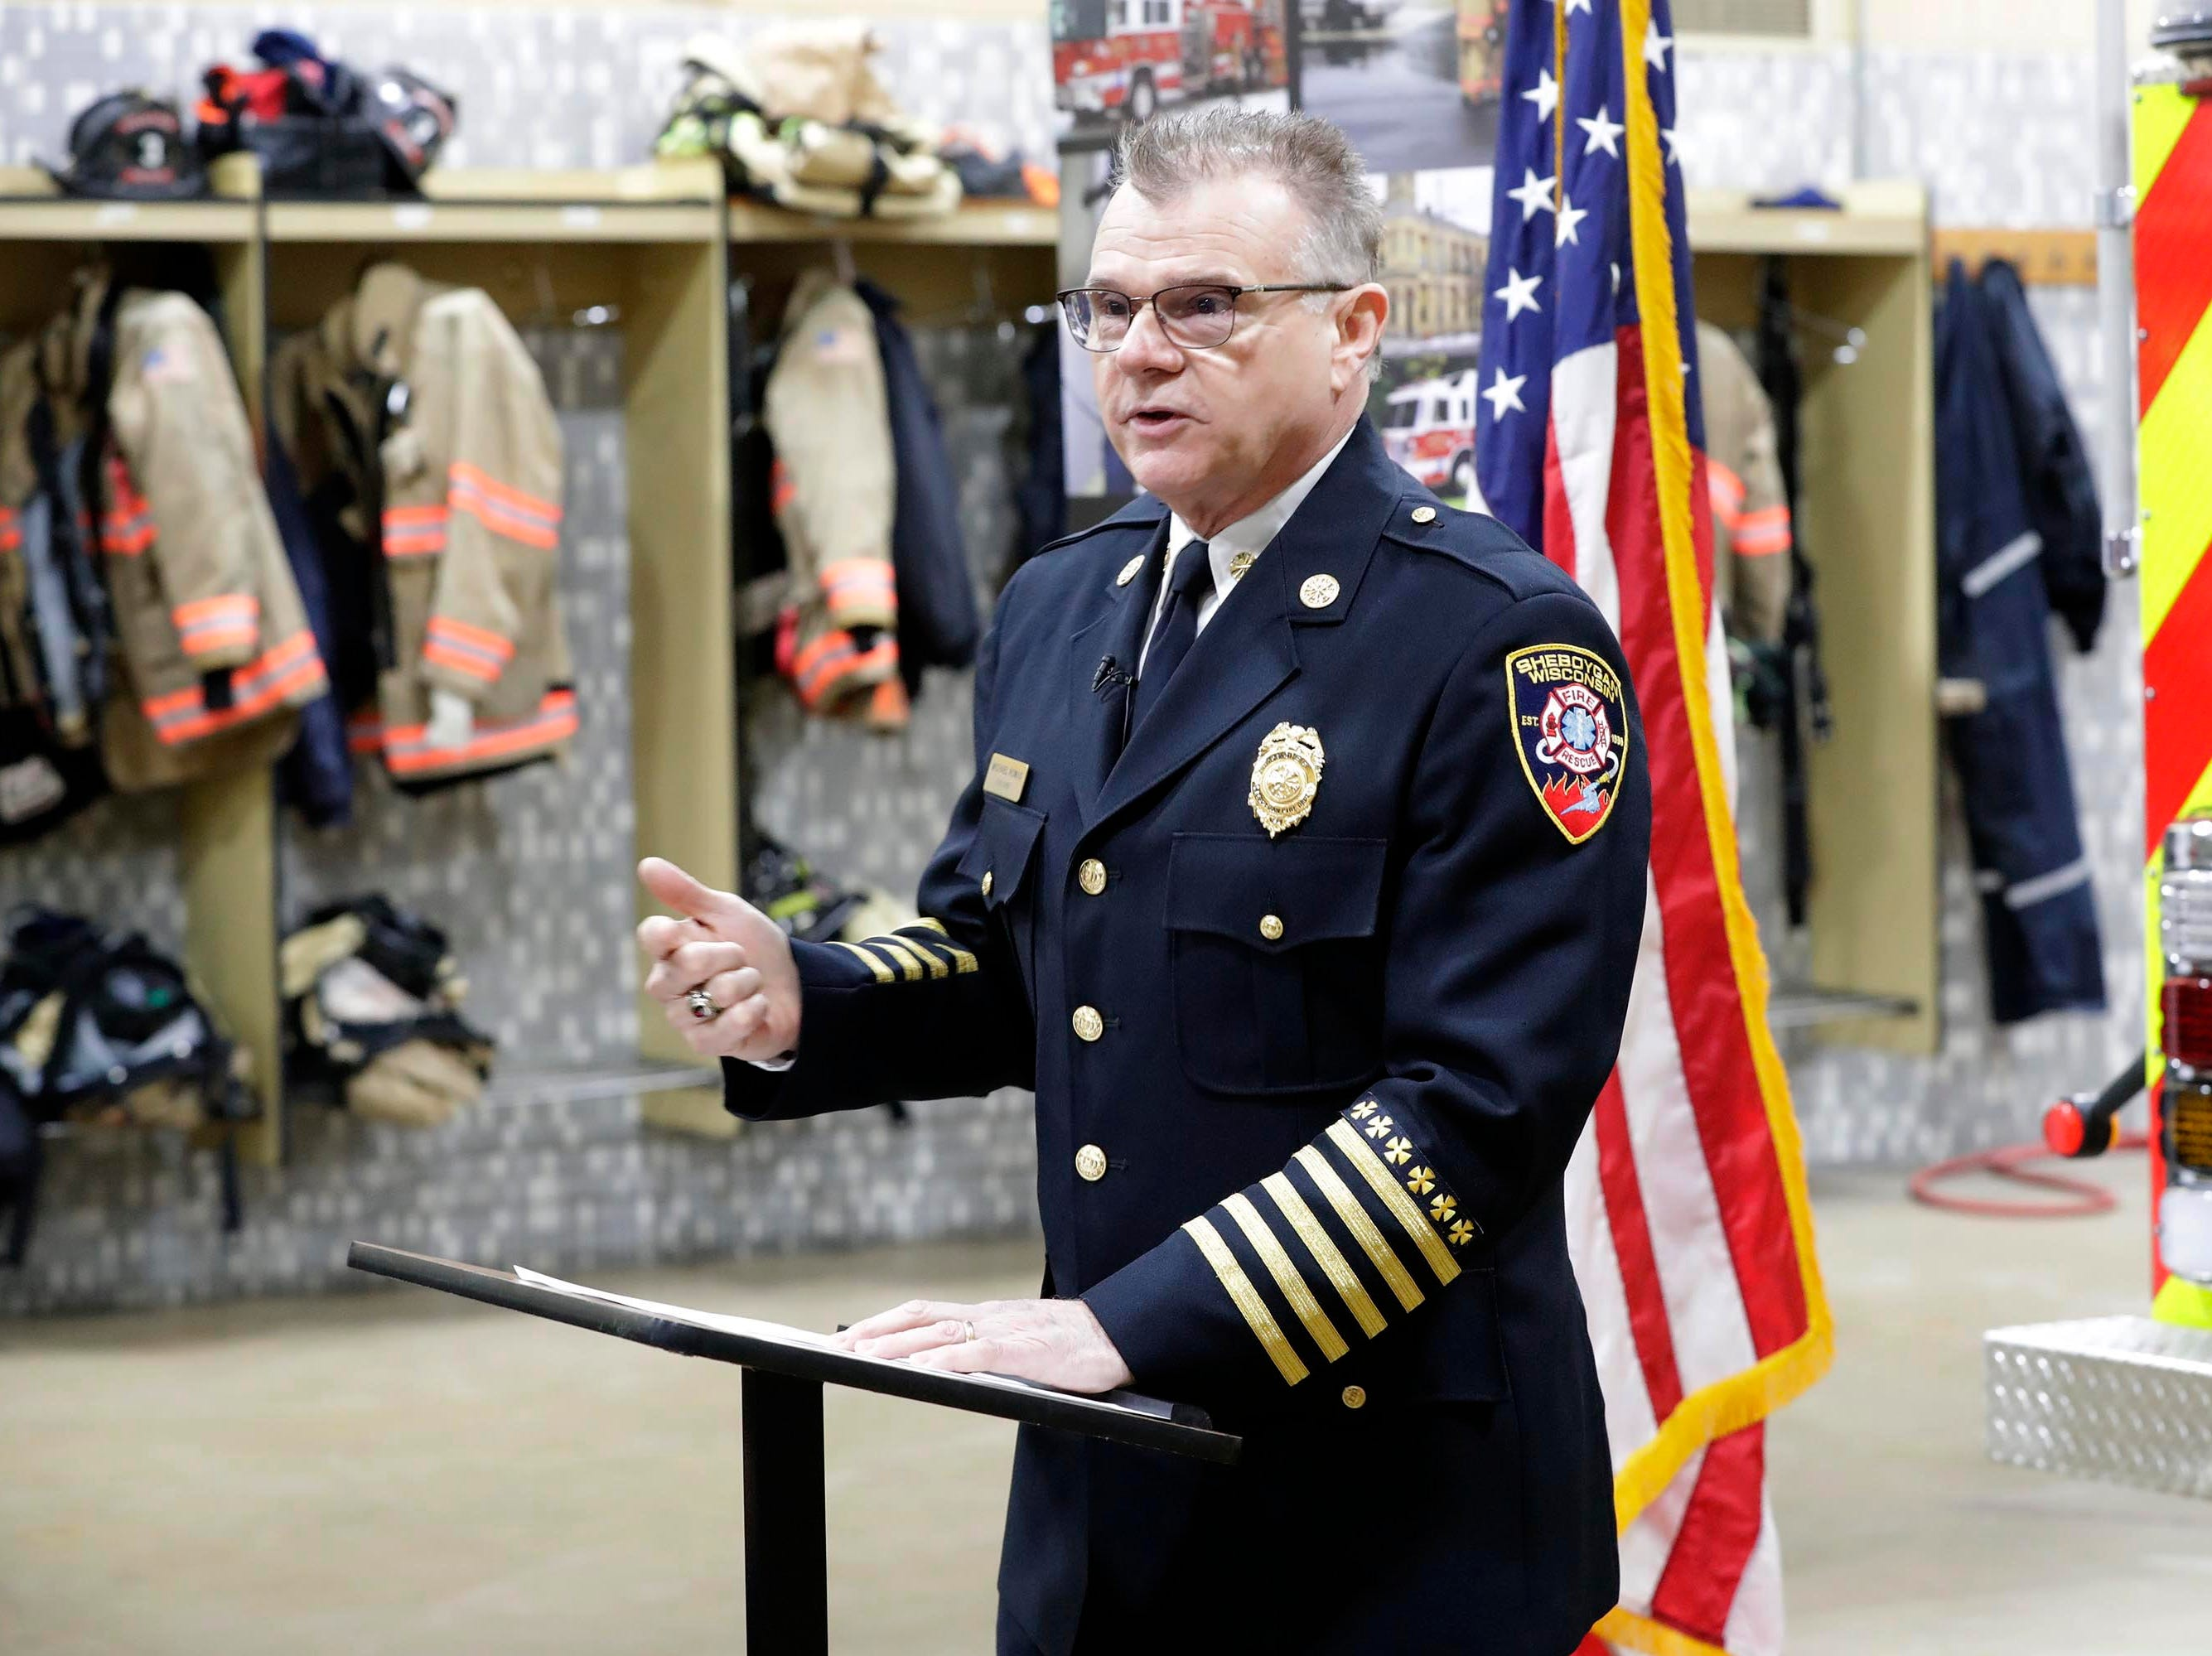 Sheboygan Fire Chief Mike Romas tells the rescue story of the five Sheboygan firefighters honored, Wednesday, February 21, 2019, in Sheboygan, Wis.